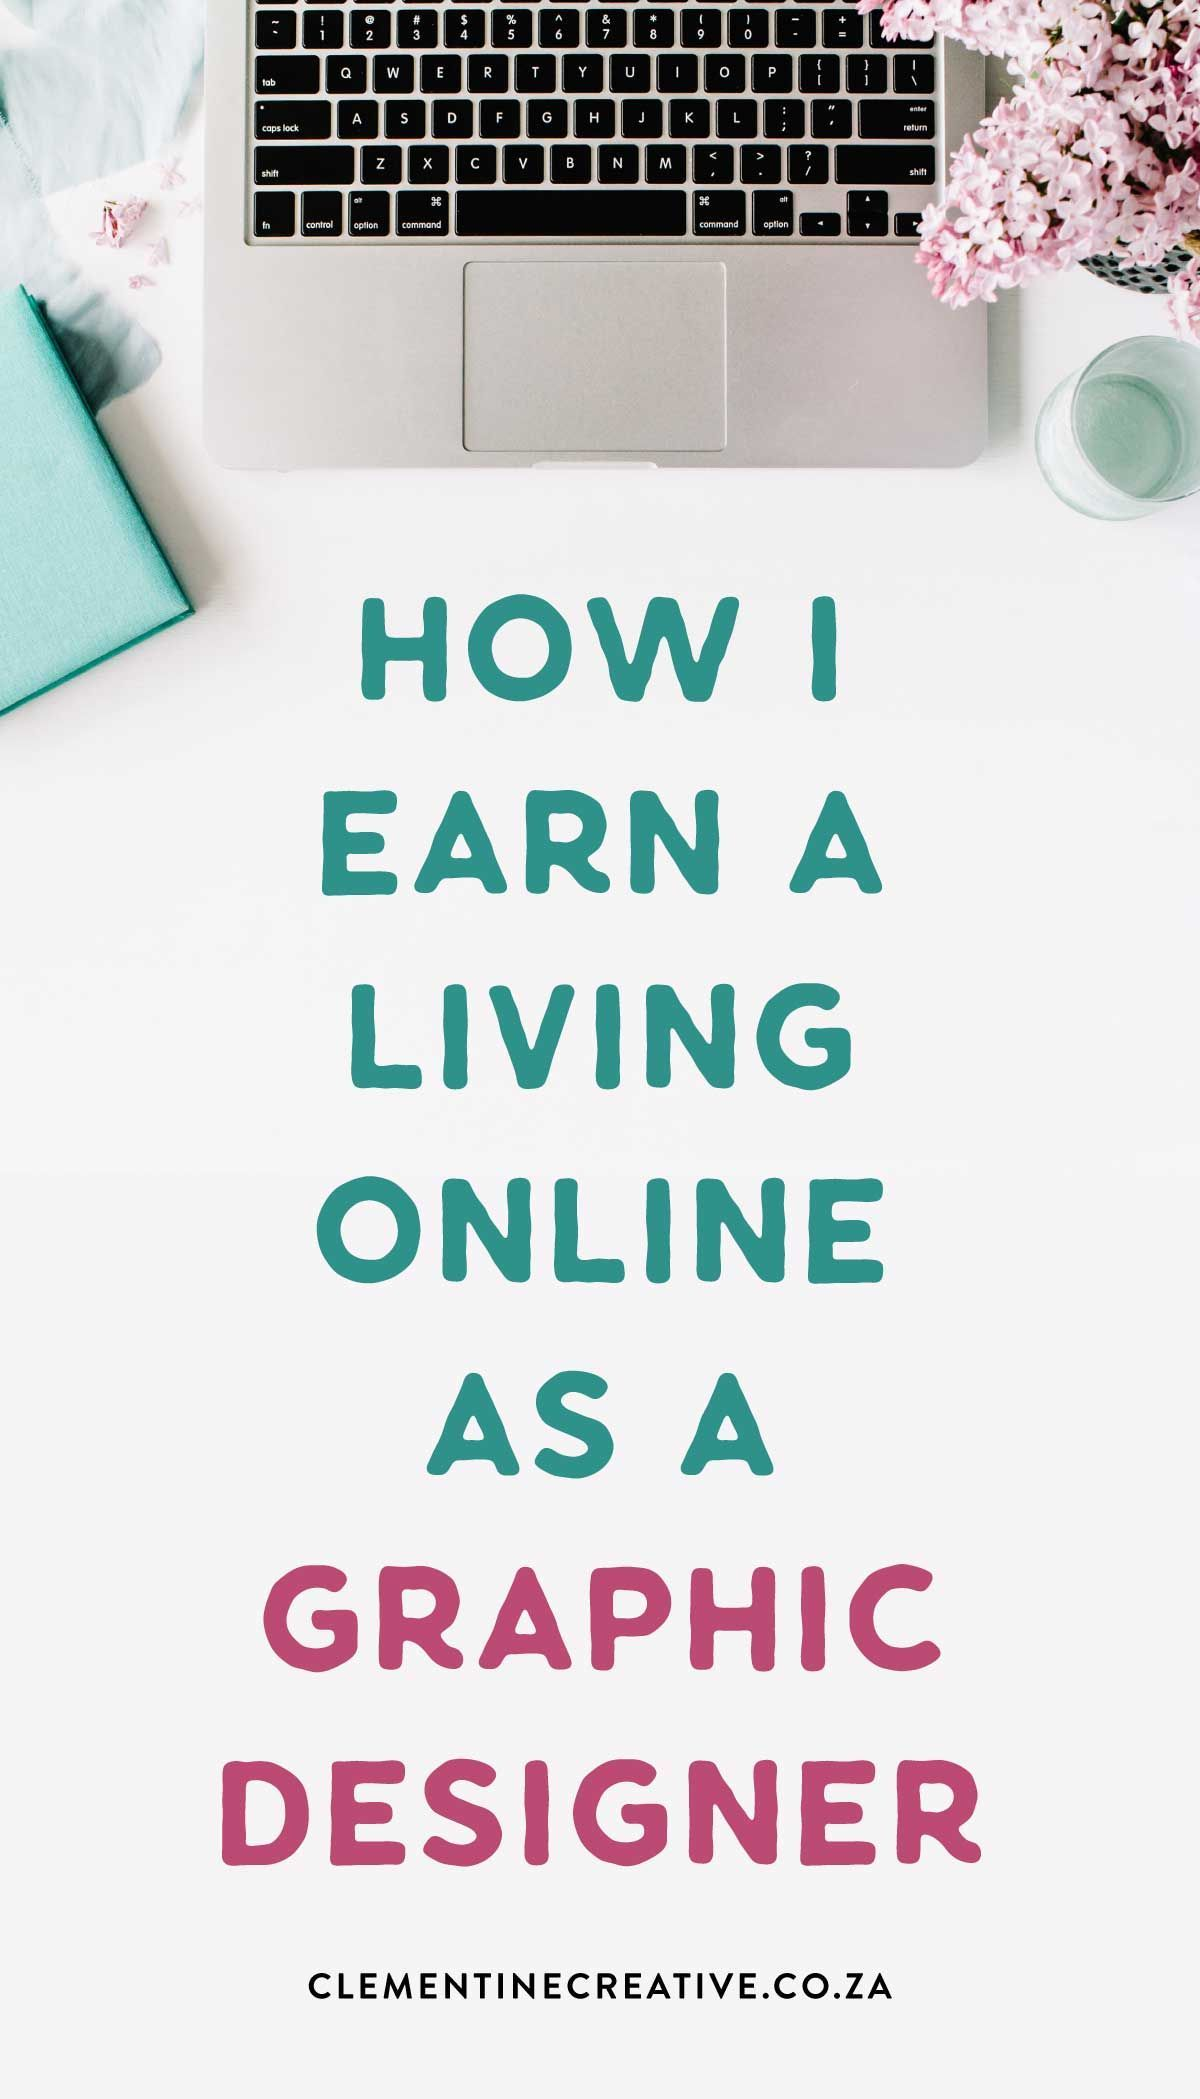 how I earn a living online as a graphic designer